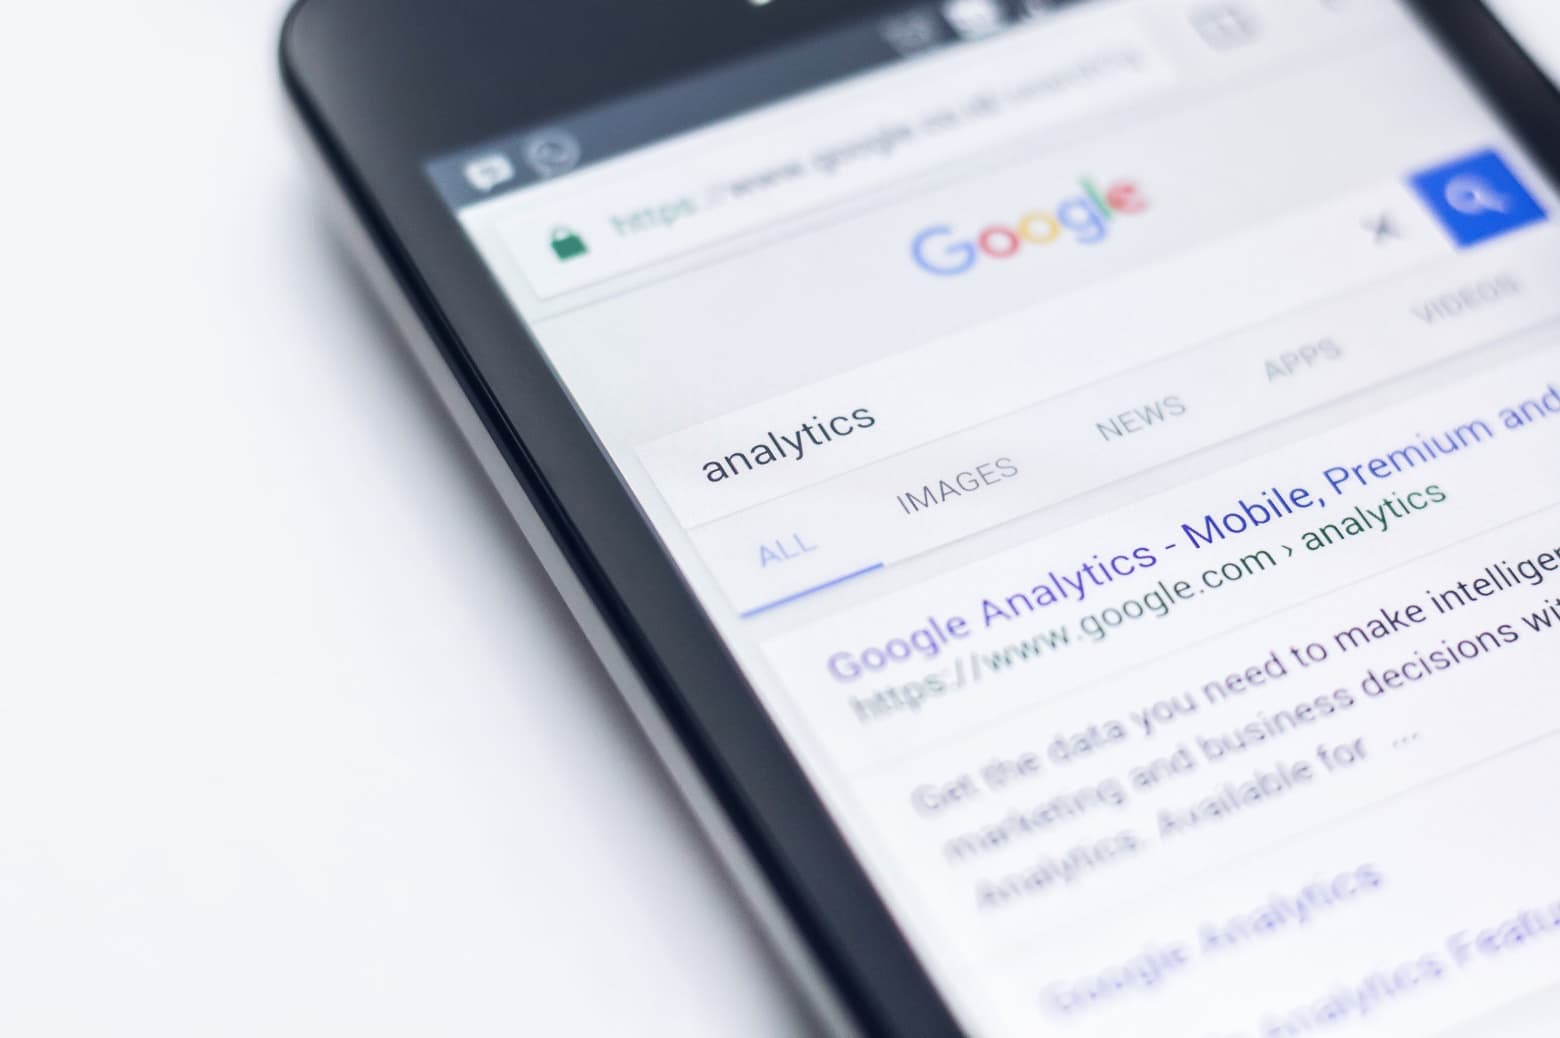 Mobile search for analytics